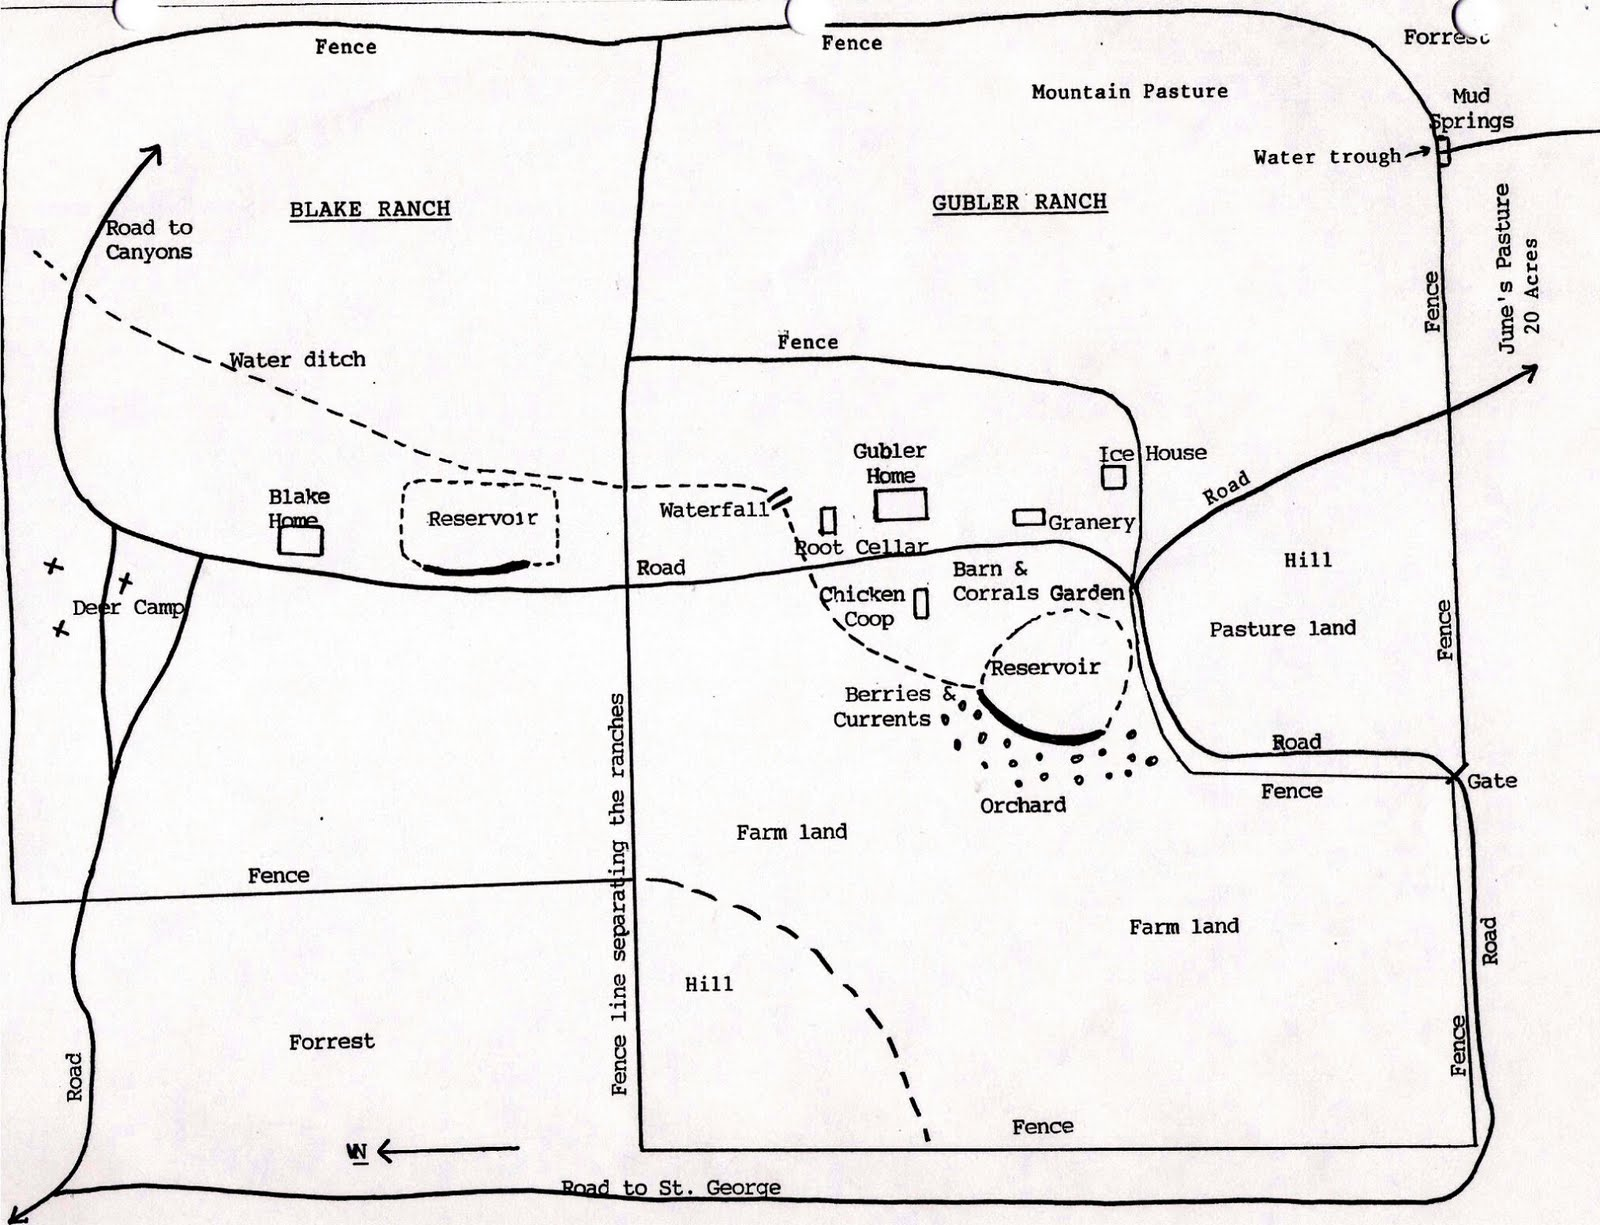 Hunt for gublers pine valley utah ranch layout for Ranch layout